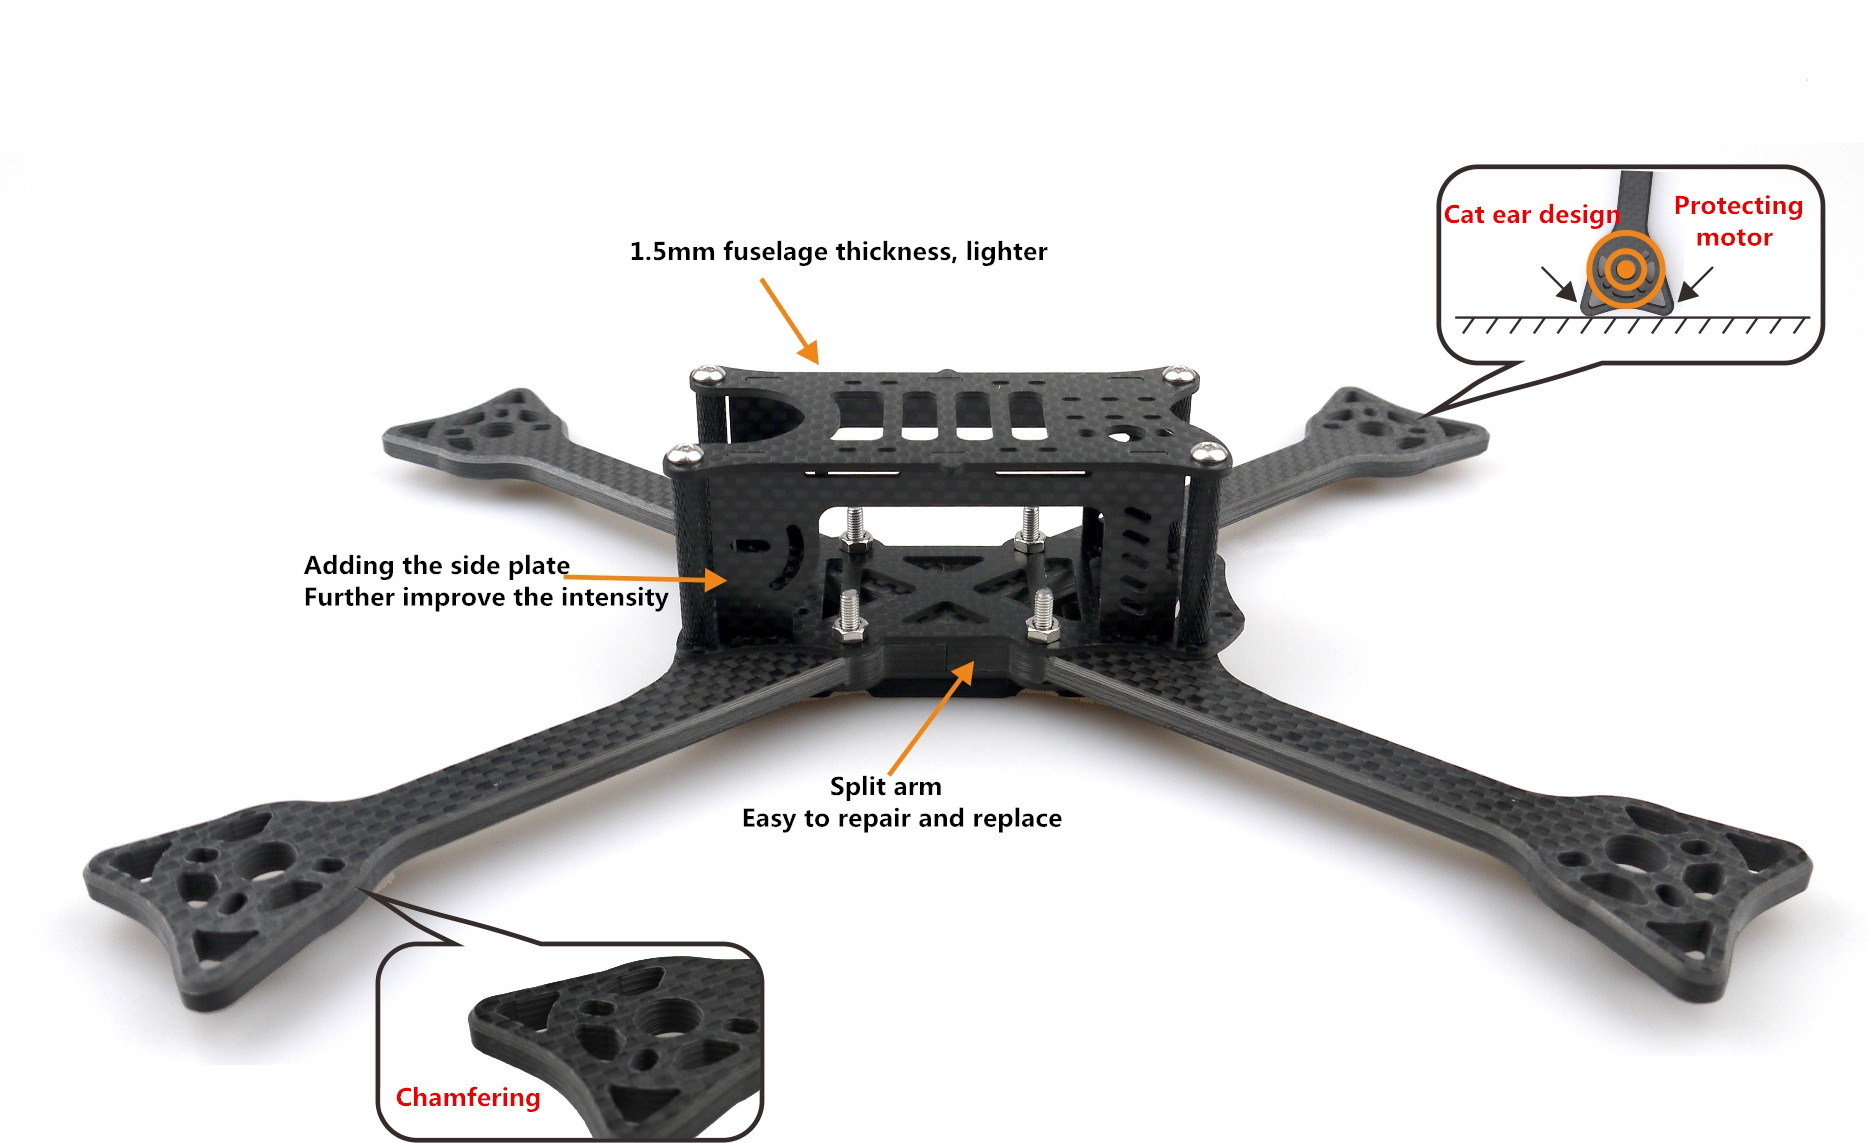 OWLRC Dragon Stretched X5 DSX-5 228mm 5mm Arm FPV Racing Frame Kit 3k Full Carbon Fiber for RC Drone